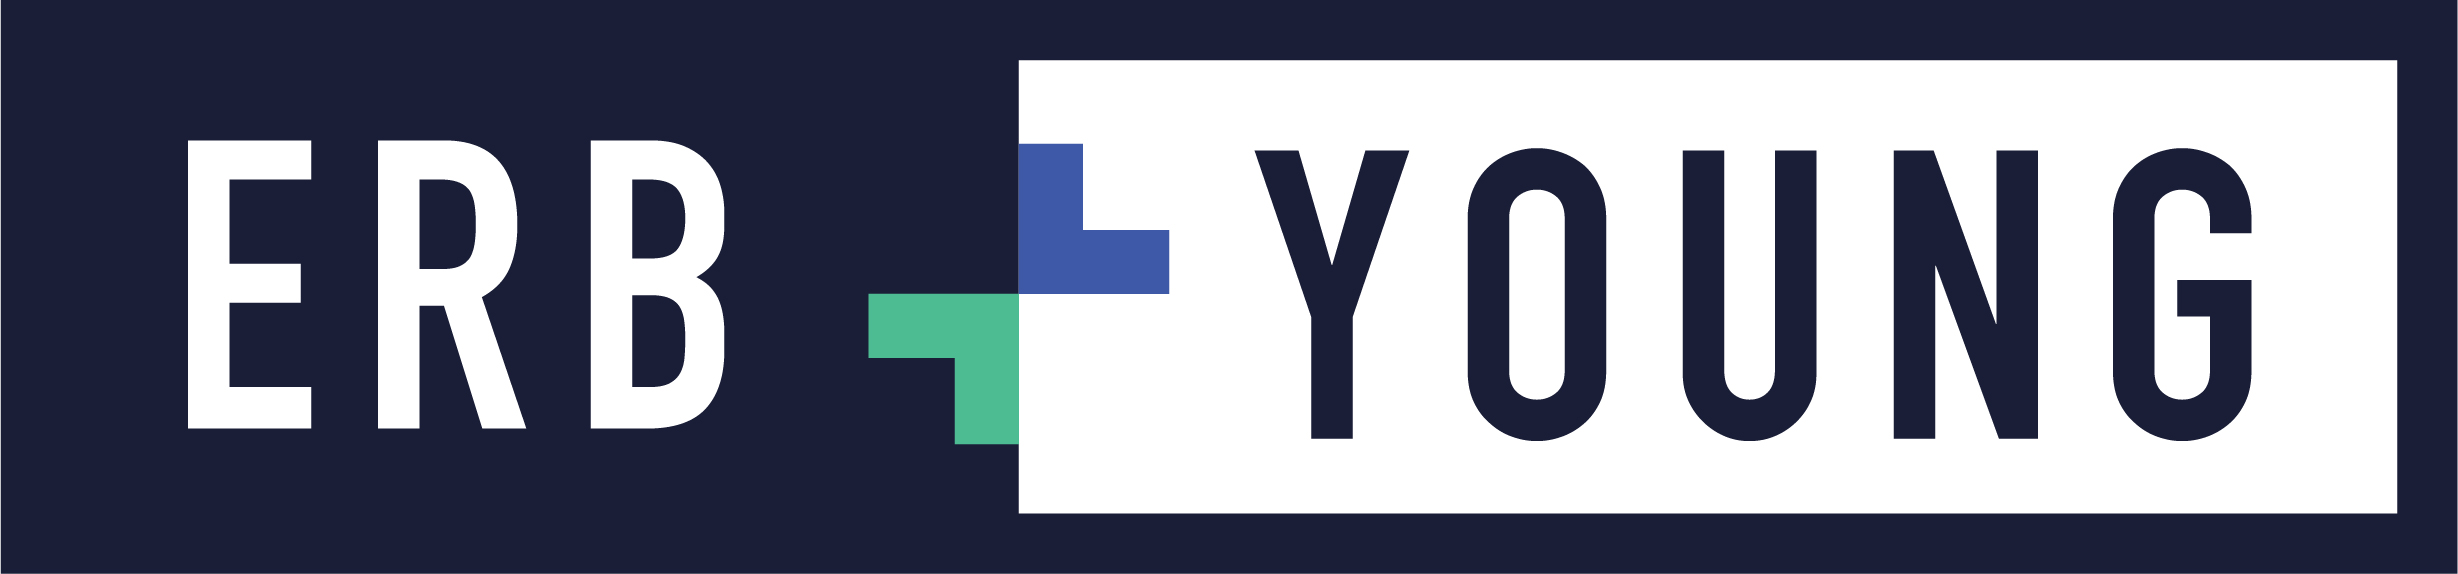 Erb and young - New Logo